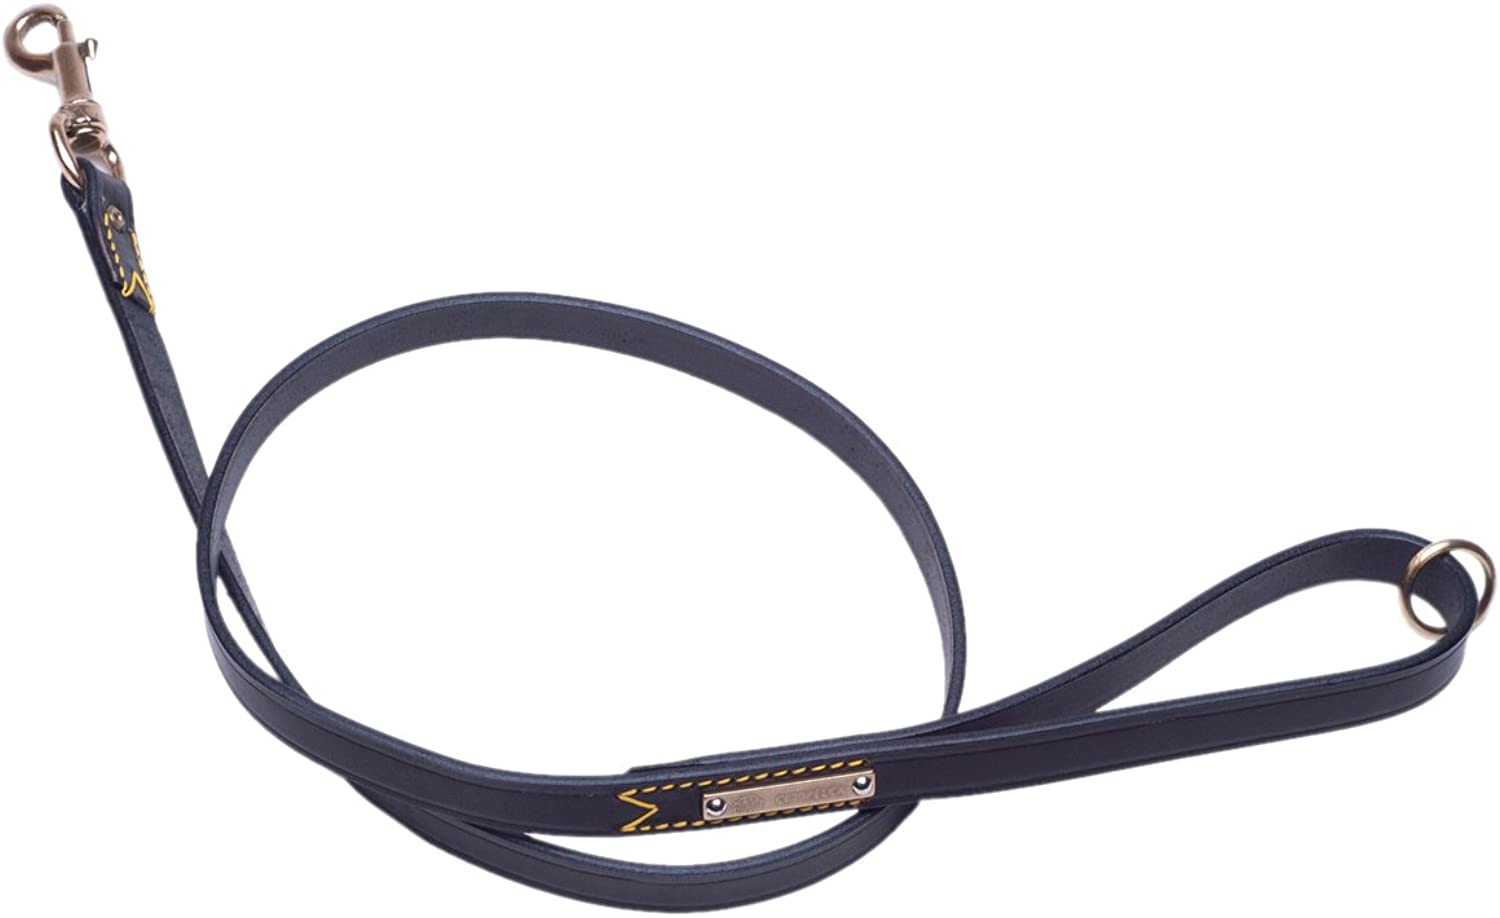 Petego La Cinopelca Classic Leather Leading Leash, Black, 3 5Inch by 47 1 4Inch